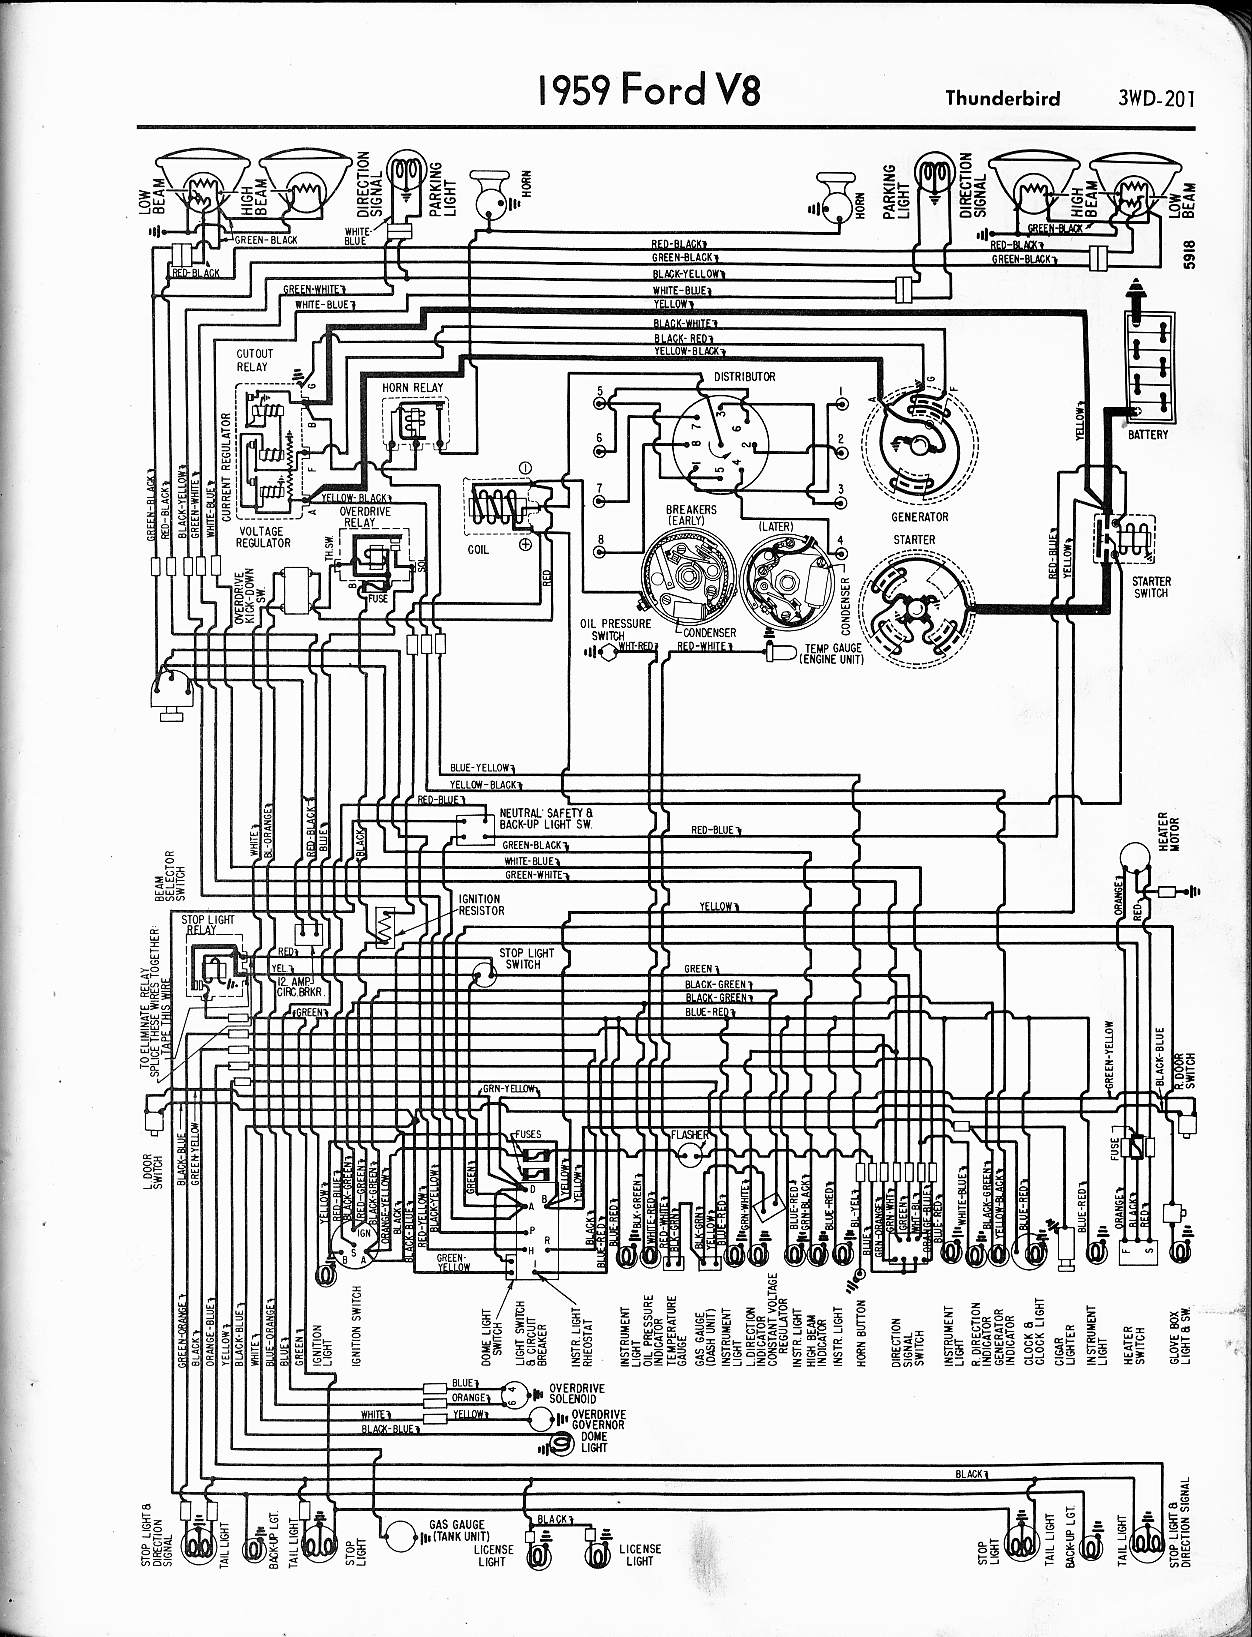 MWire5765 201 57 65 ford wiring diagrams 1970 ford wiring diagram at soozxer.org